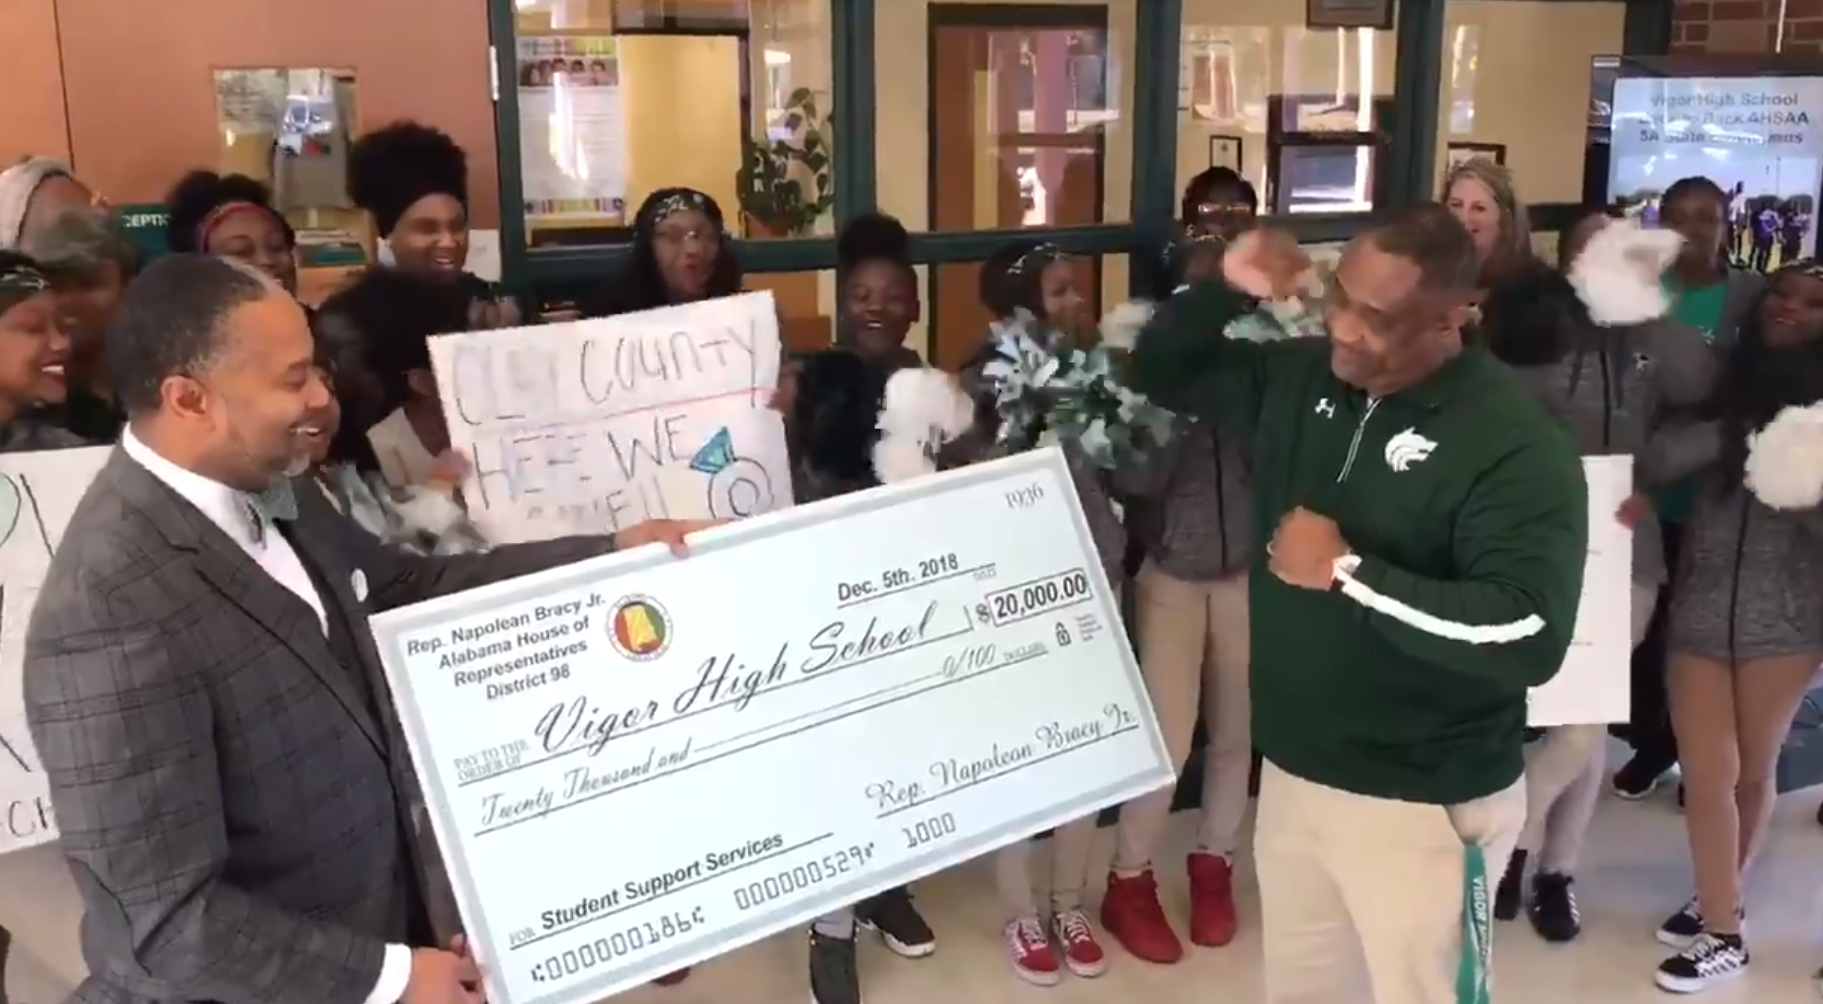 (image: WPMI) Napoleon Bracy donates $20,000 to Vigor High School